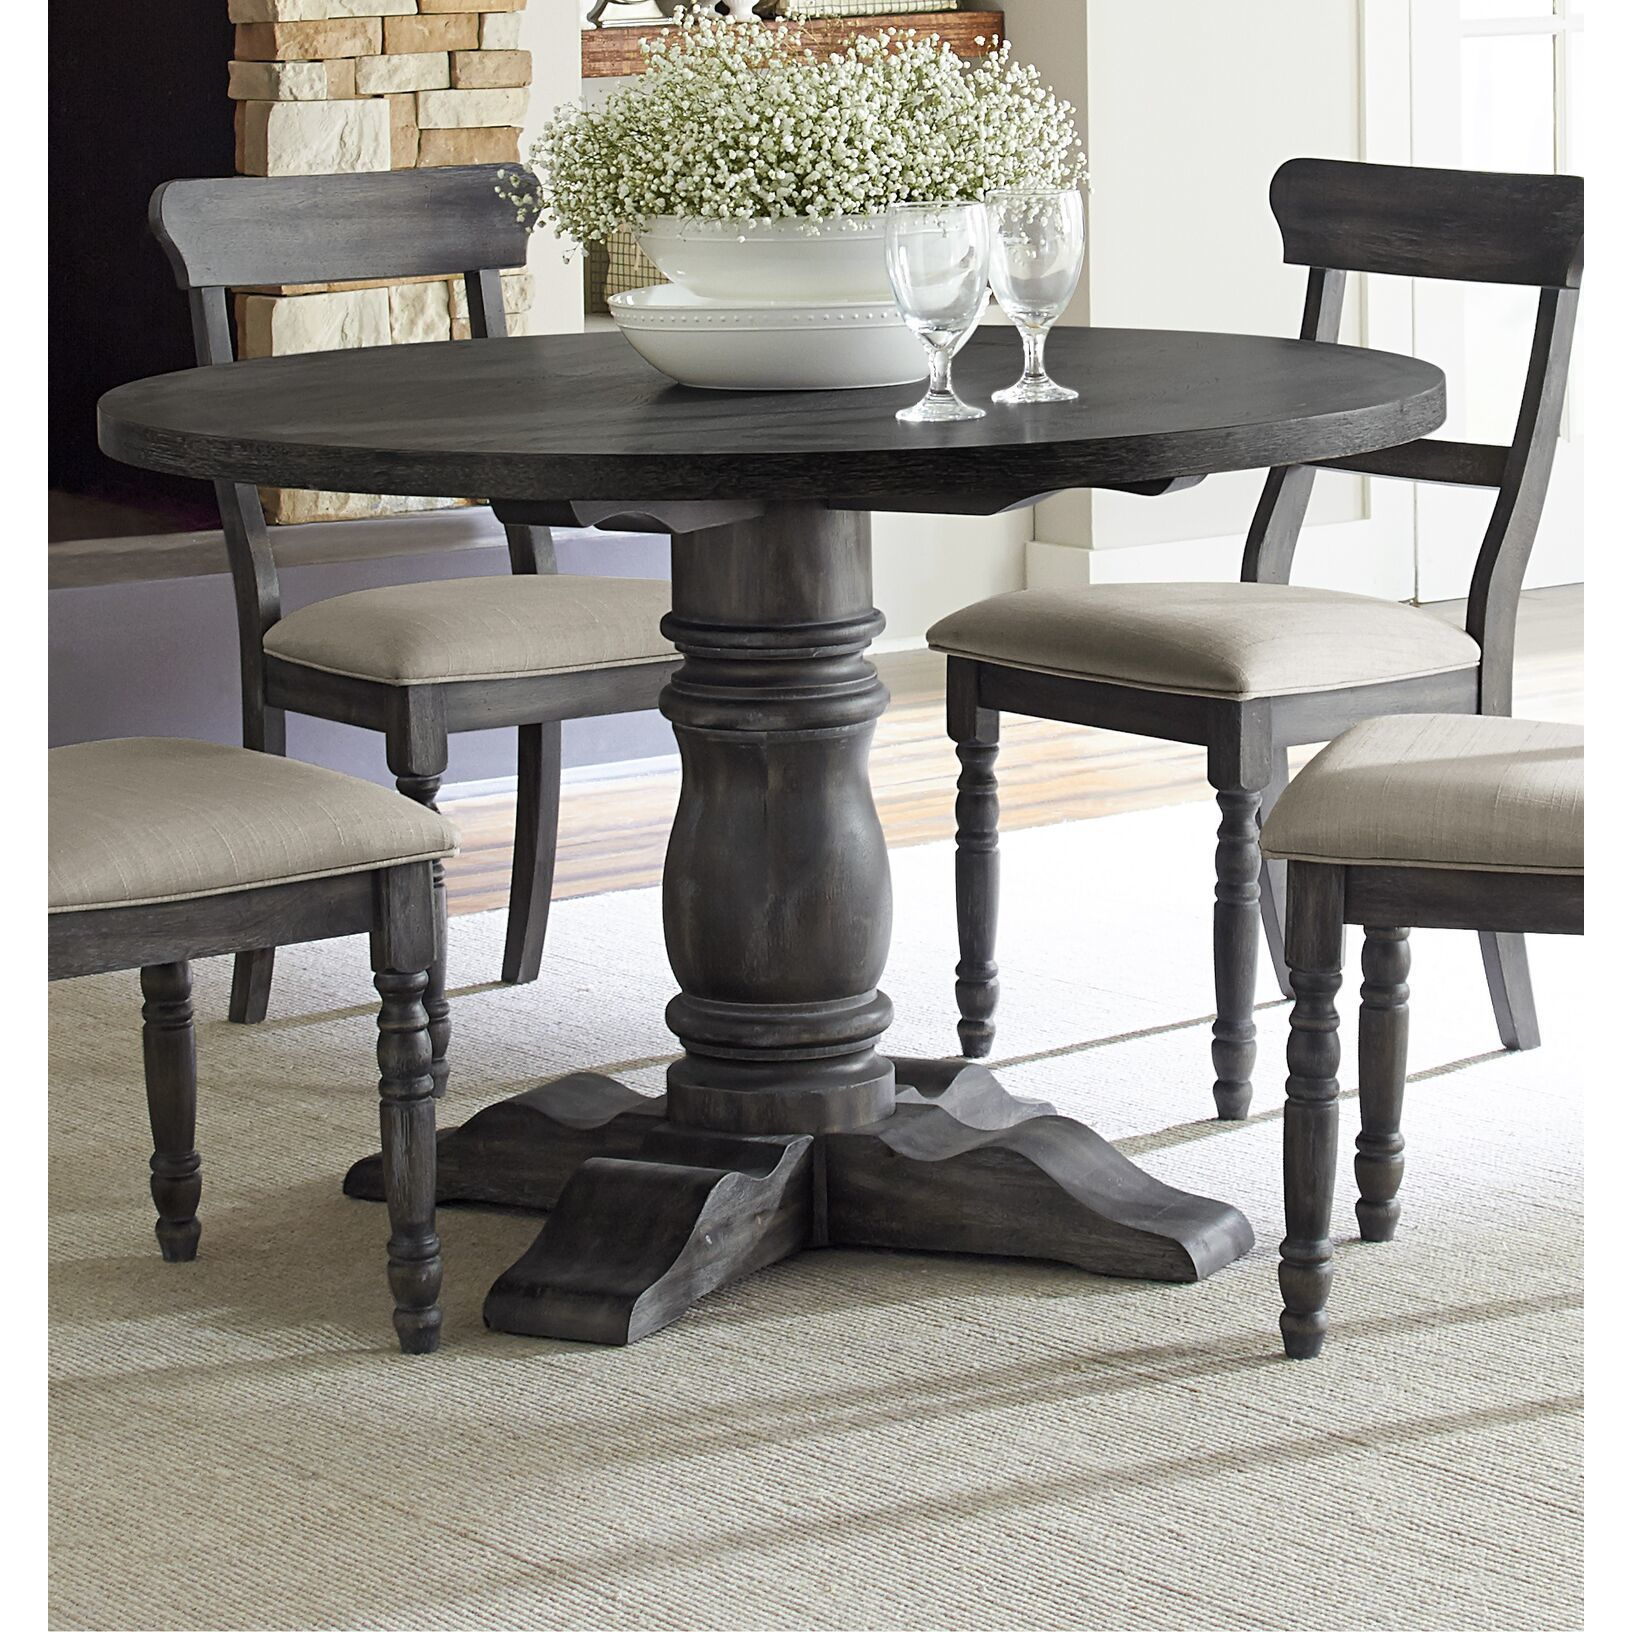 Shop gracewood hollow petri downs weathered pepper grey finish round dining table free shipping today overstock com 22695858